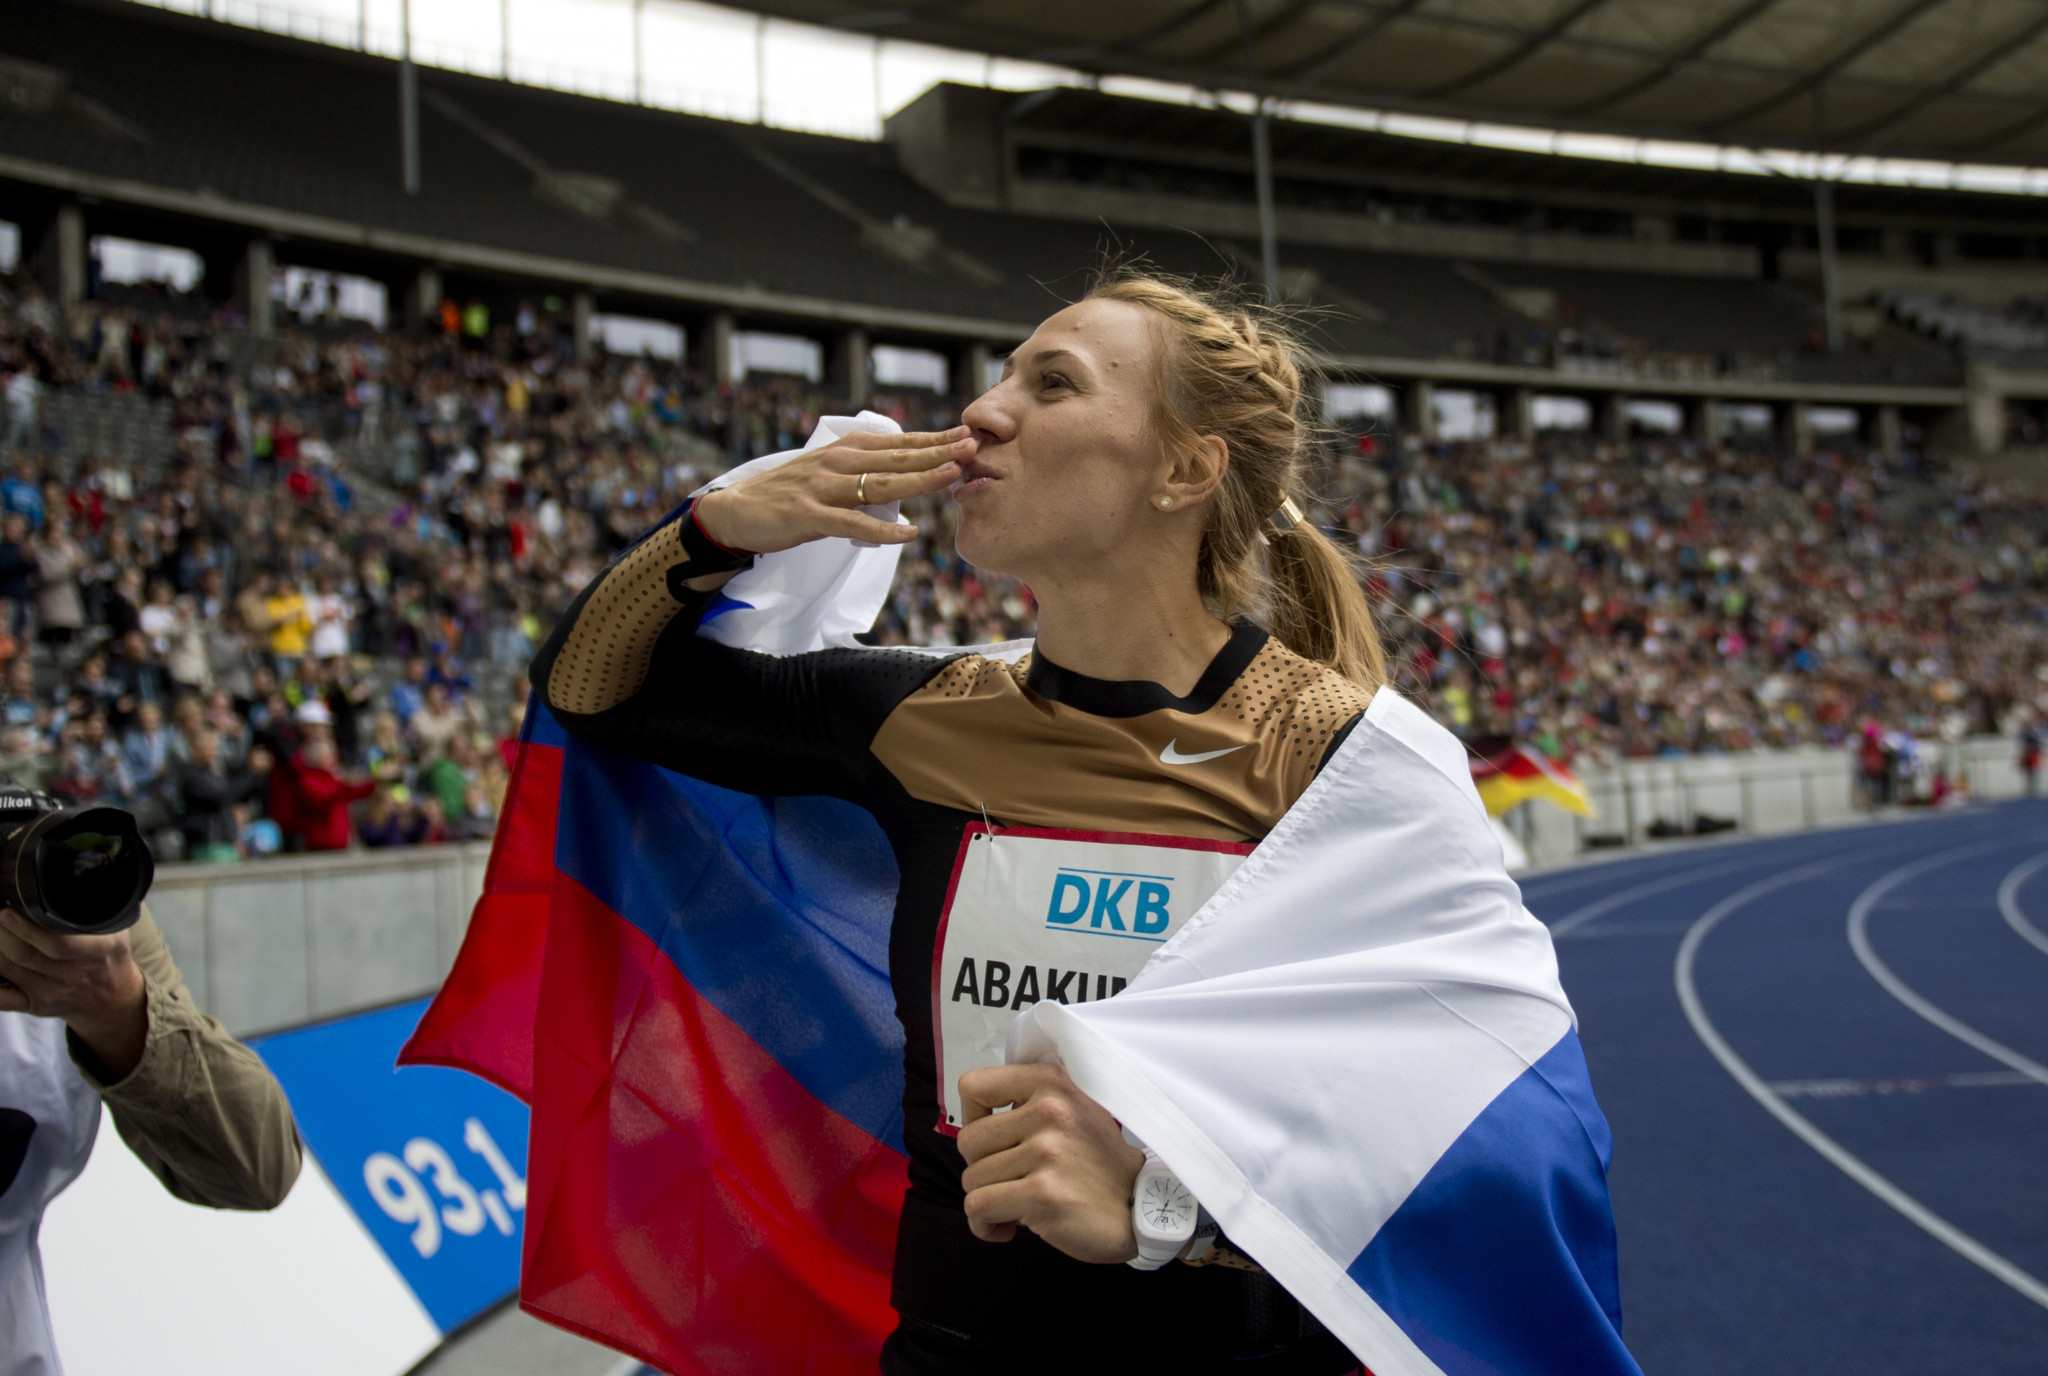 Mariya Abakumova of Russia was stripped of her 2008 Olympic Games javelin silver medal in 2018 ©Getty Images